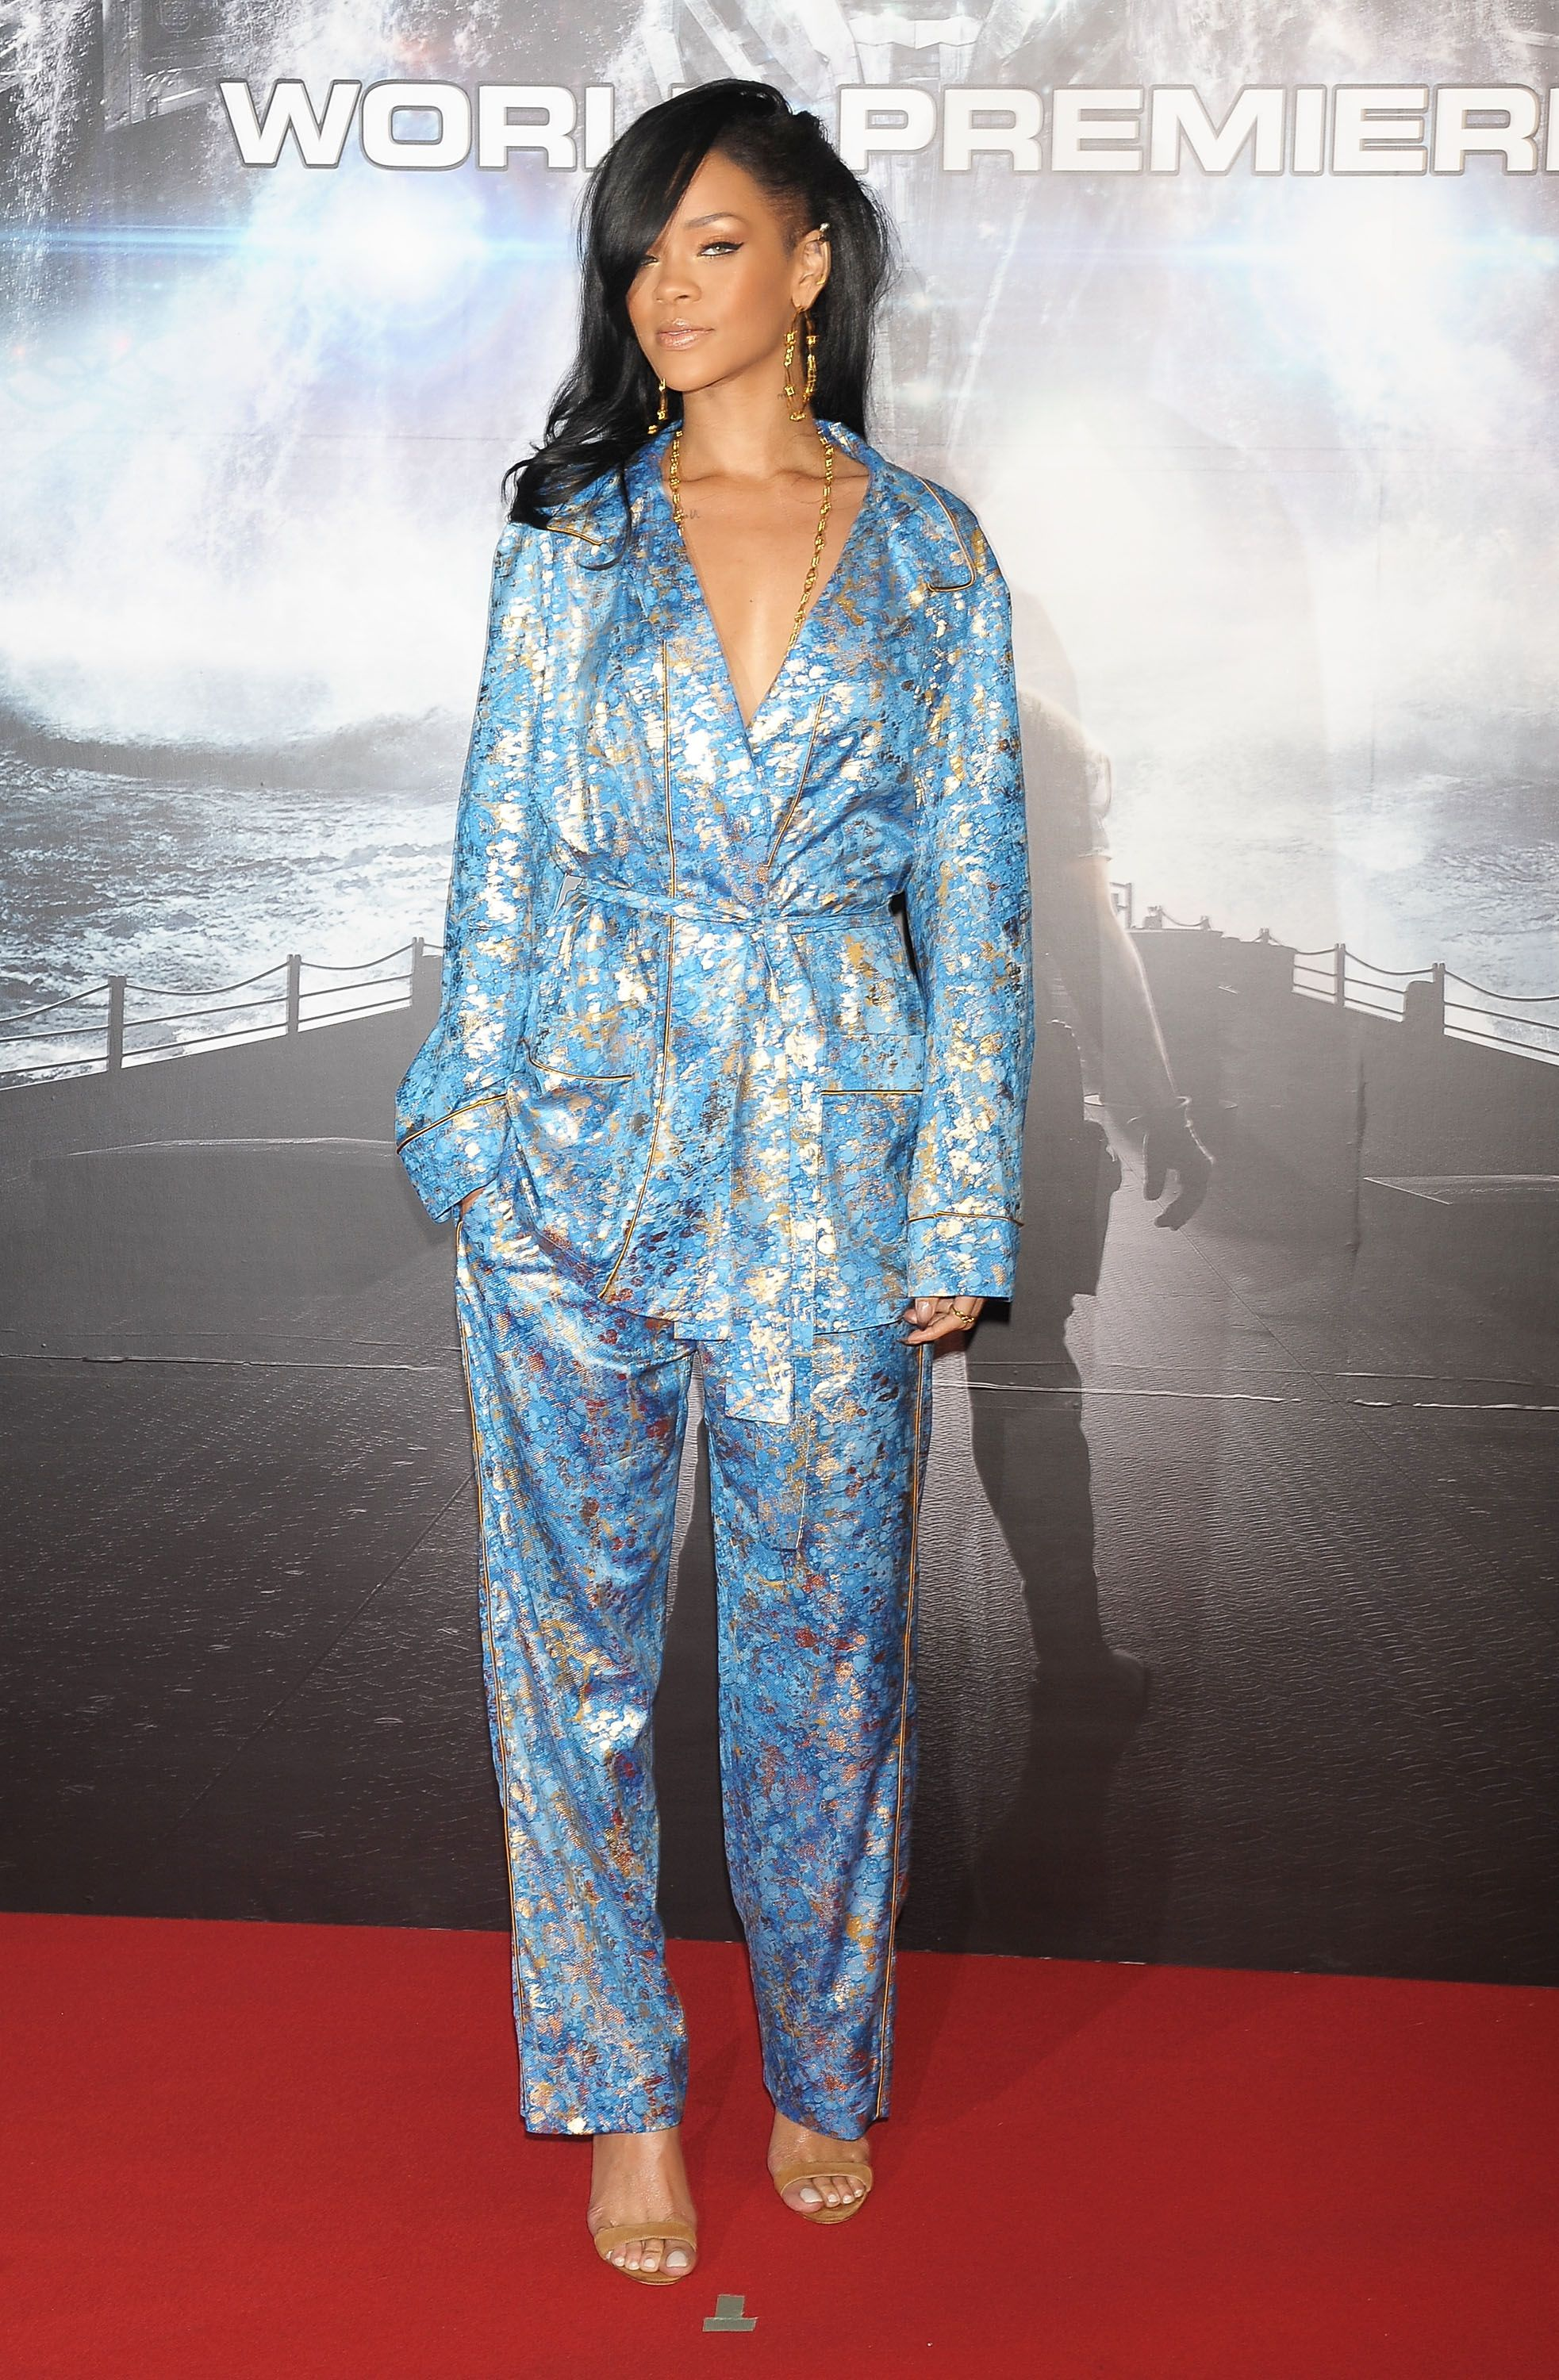 Celebrities in PJs Publicly - Celebrities Wearing PJs and Nightgowns Out eead719aa